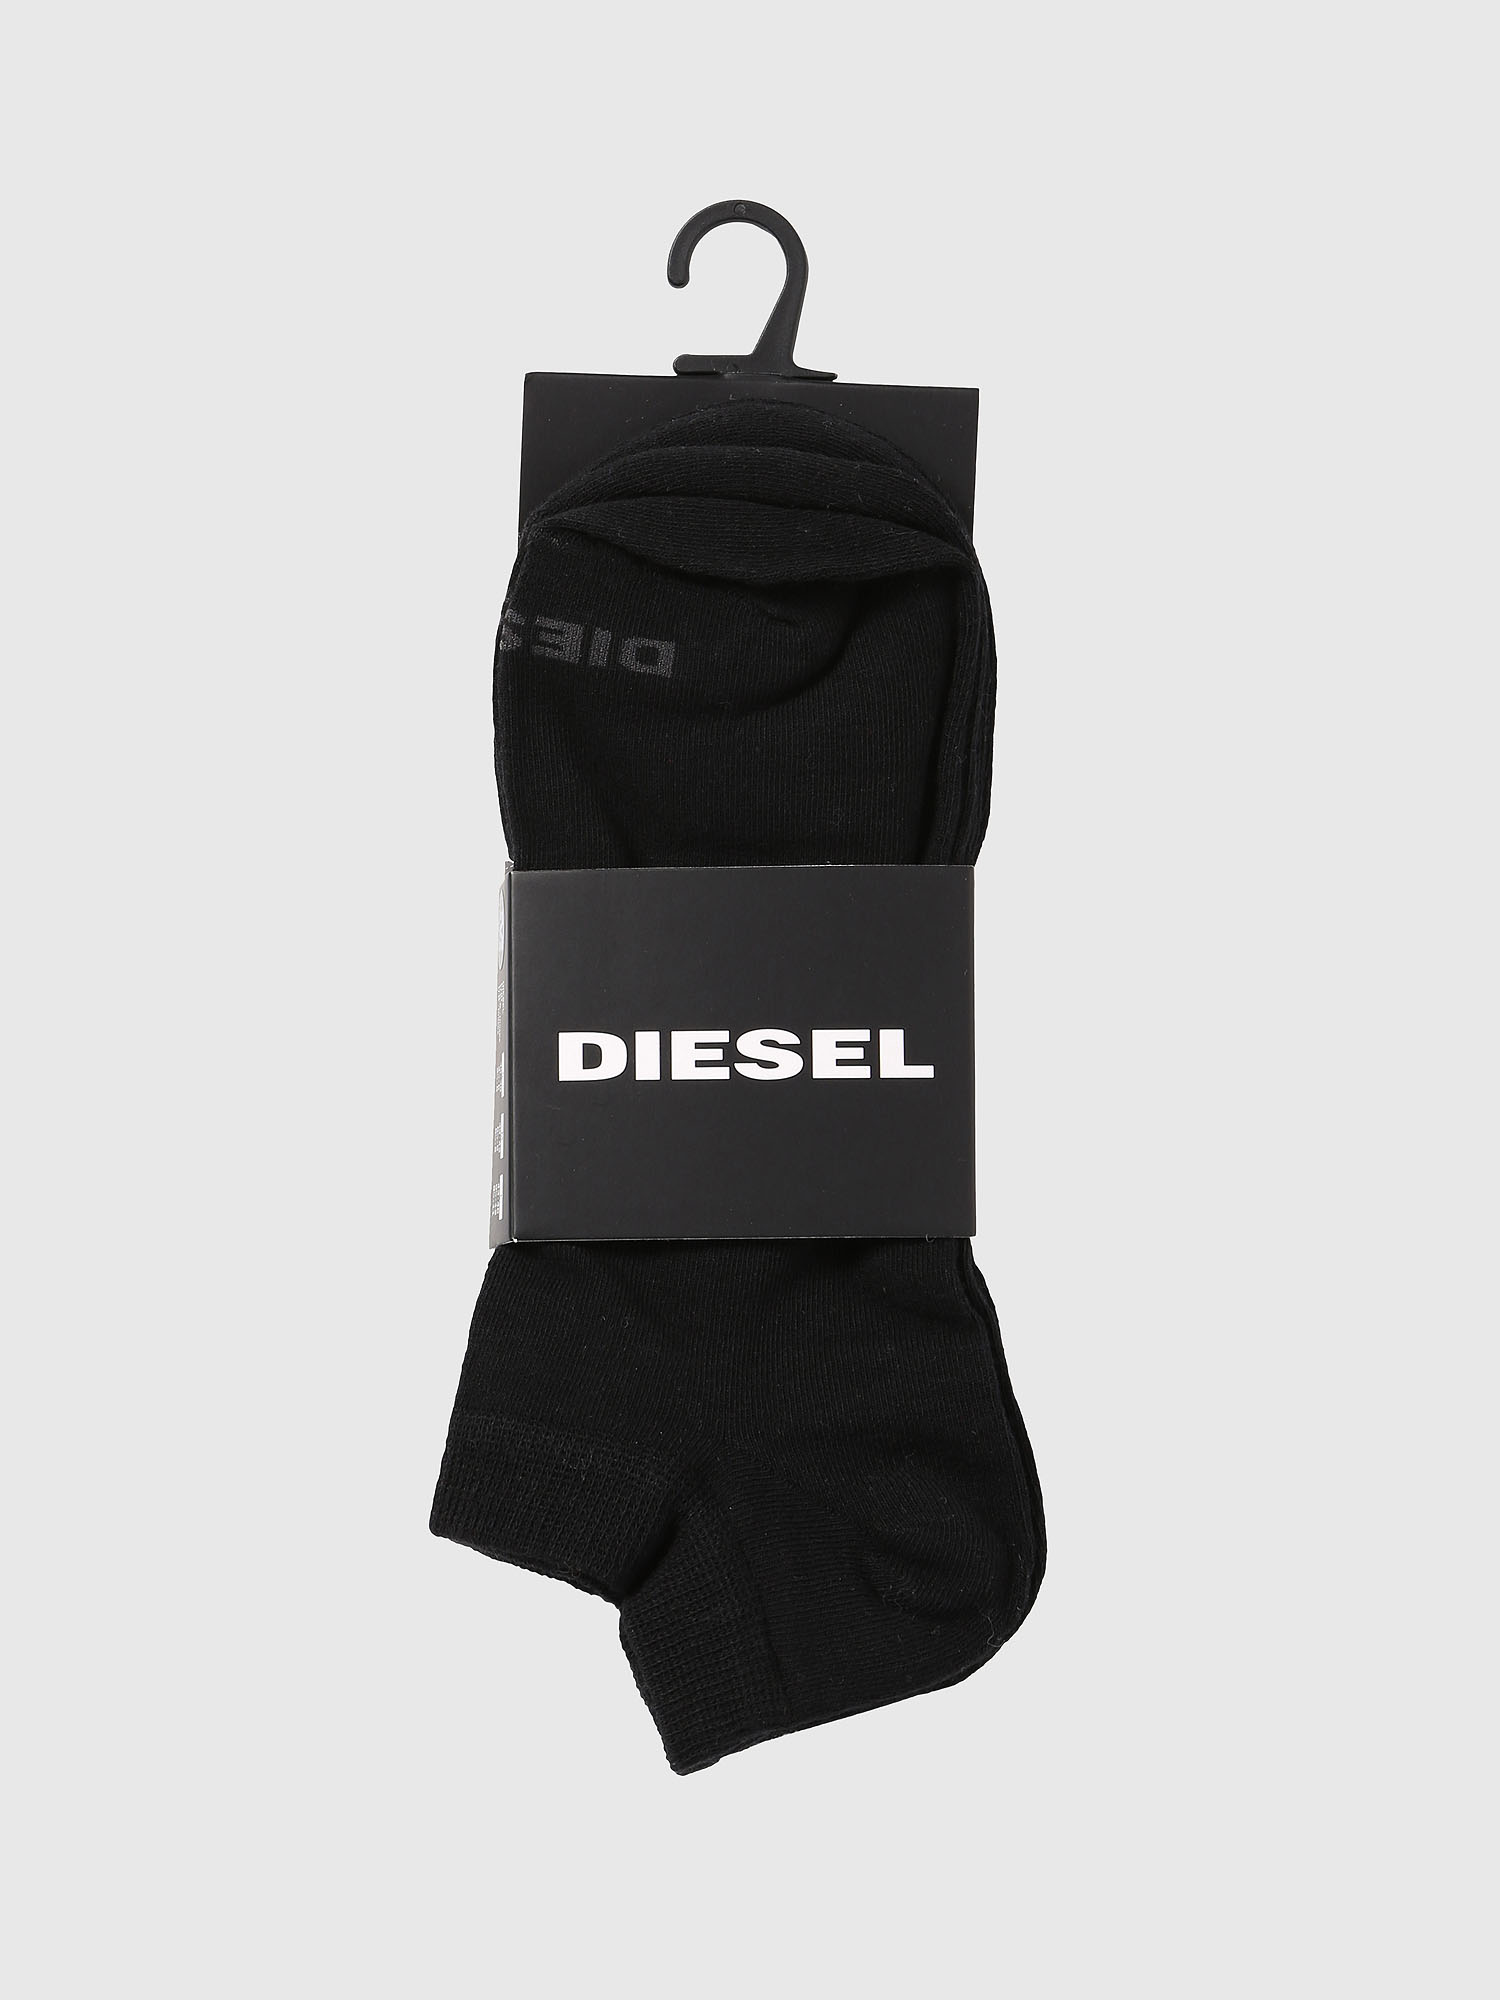 Diesel - SKM-GOST-THREEPACK,  - Low-cut socks - Image 2